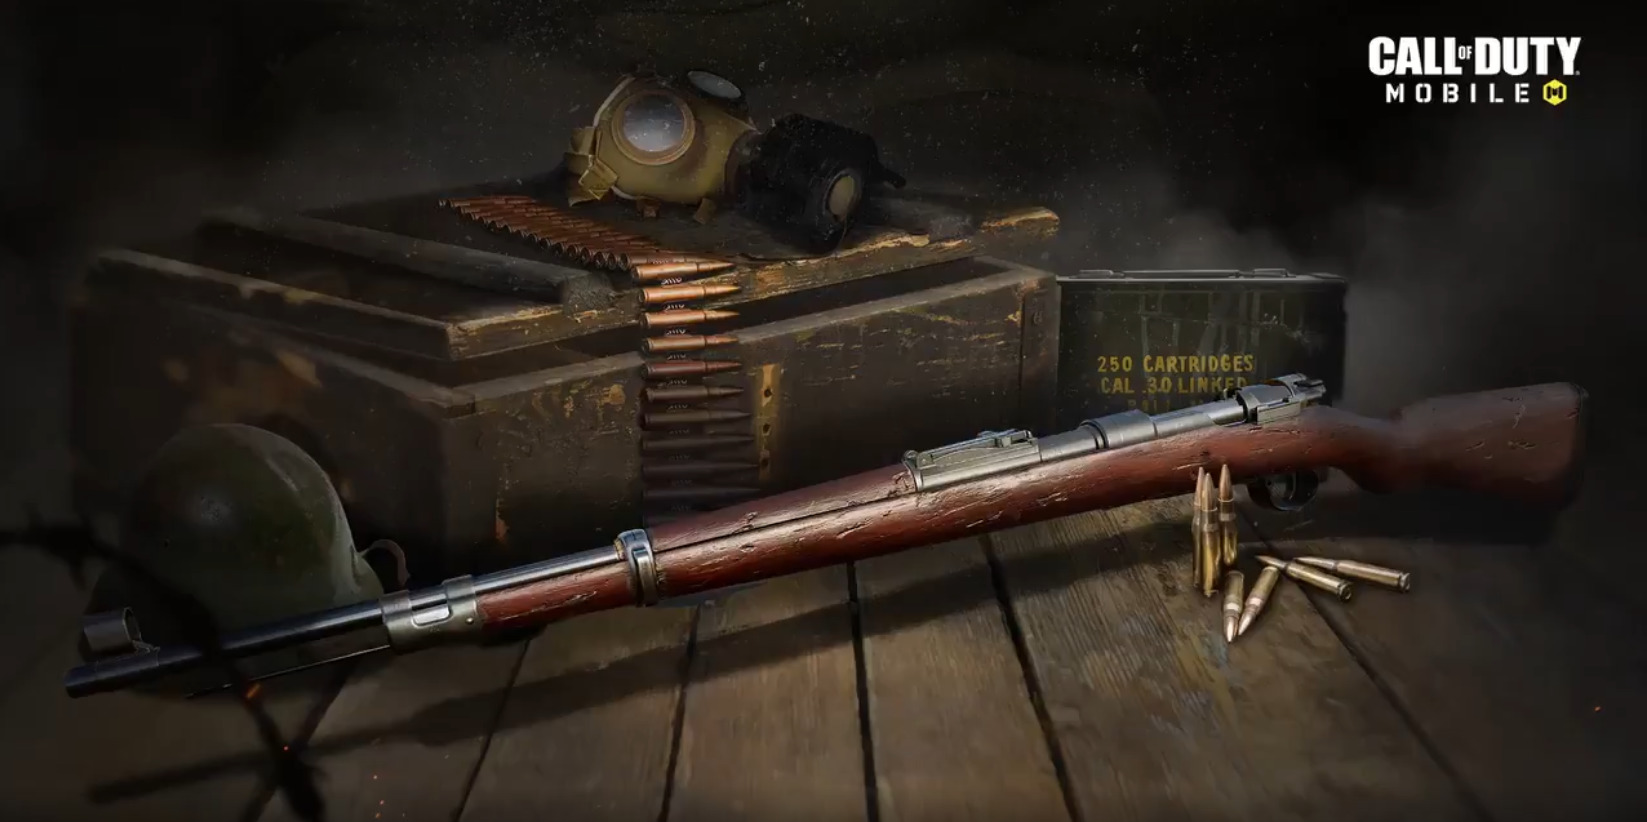 Kilo Bolt Action Is The First Marksman Rifle Coming To Call Of Duty Mobile Dot Esports